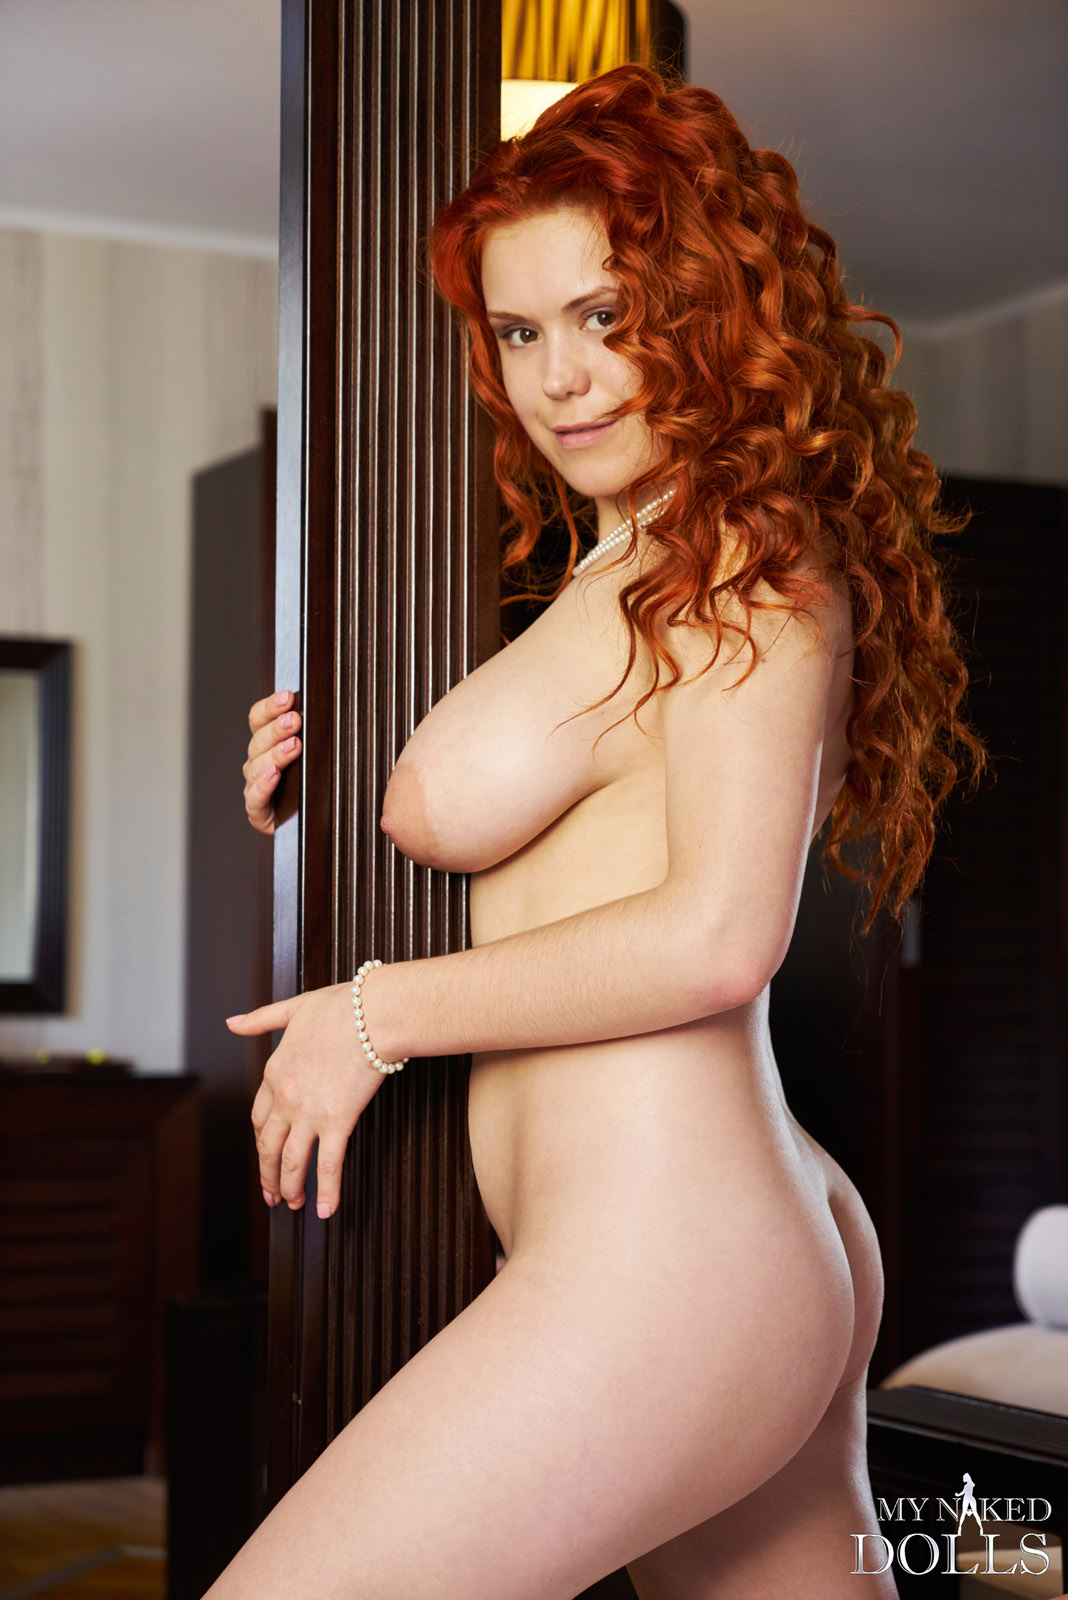 Lillith Von Titz Big Perfect for My Naked Dolls - Curvy Erotic